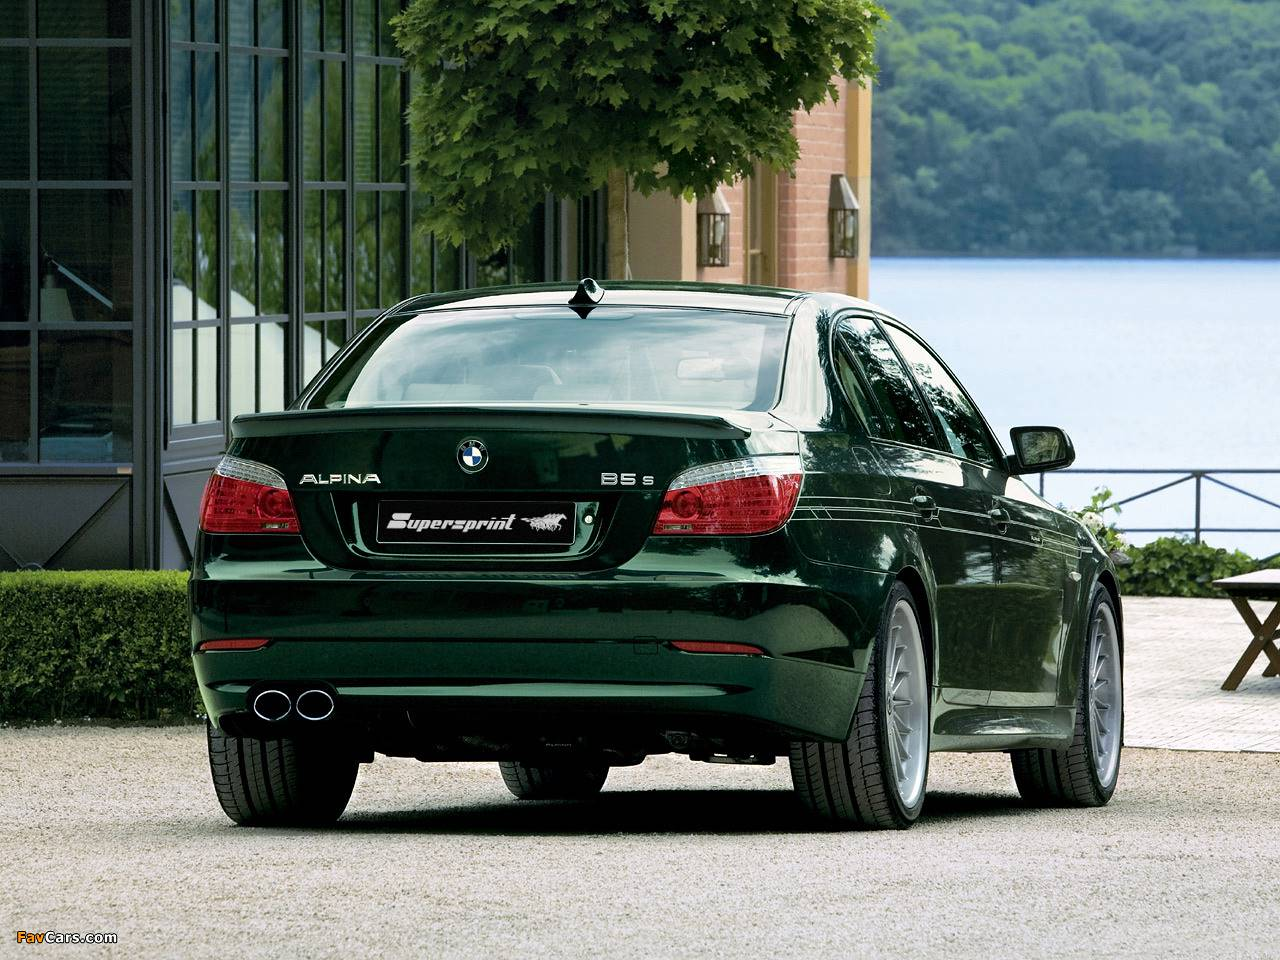 Alpina BMW - ALPINA B5 S (E60 / E61 Sedan / Touring) 4.4i V8 (530 Hp) 2007 -> 2010